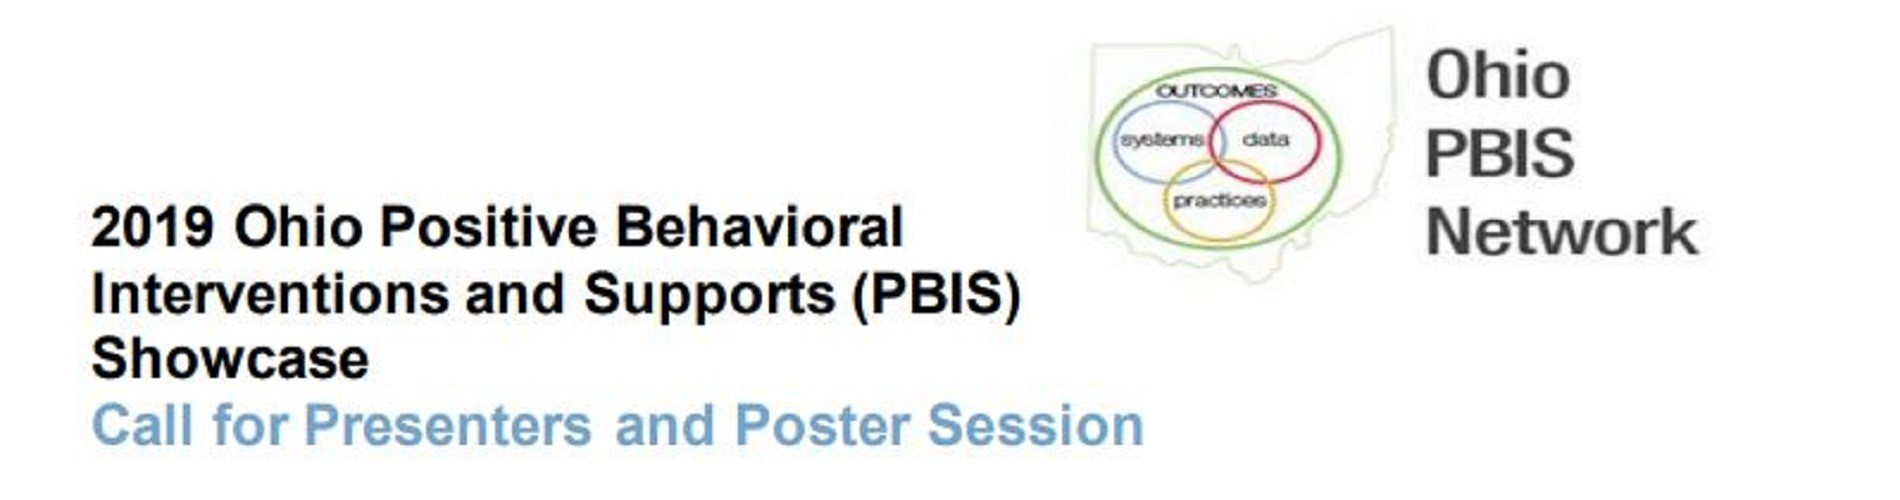 2019 Ohio PBIS Showcase-December 11, 2019 Call for Presenters and Poster Session